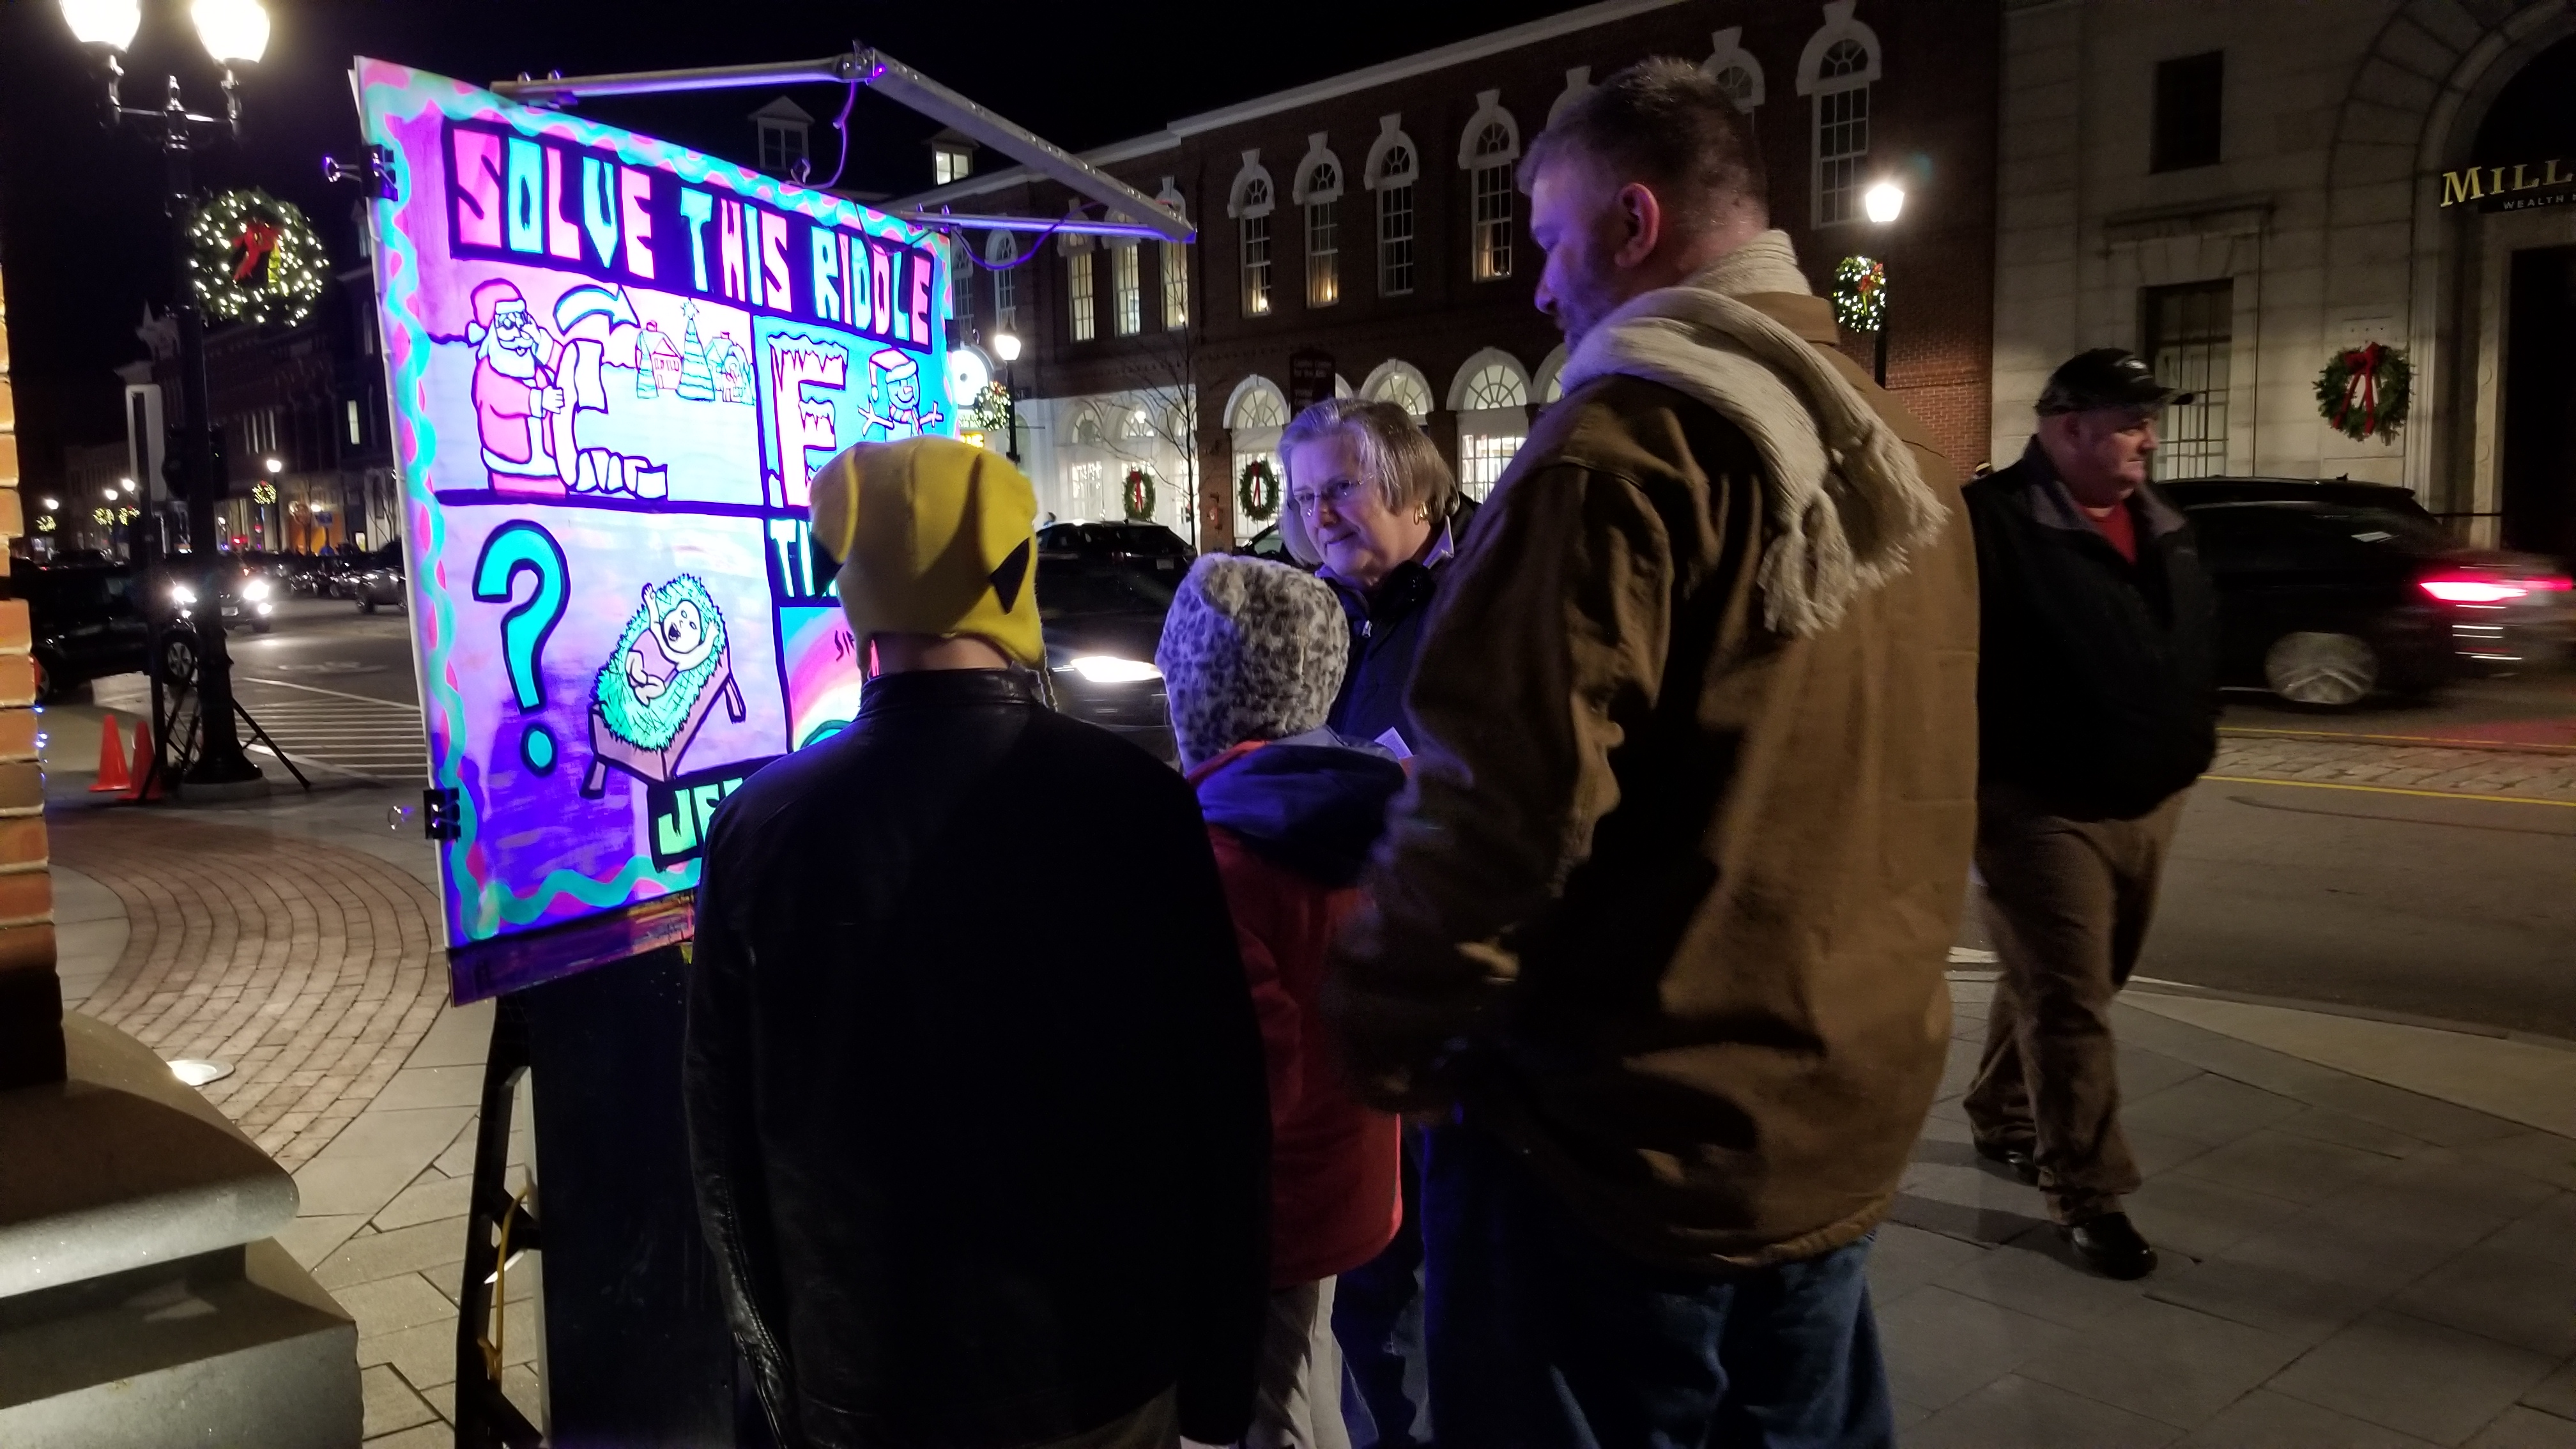 Our State Capitol, Concord, NH, had its annual 'Midnight Merriment' event and tons of people came out for it. Our Christmas-themed fluorescent riddles got us intro loads of fruitful gospel conversations, like this one with this friendly family. Was it cold that night? Oh yeah! But worth it!!!